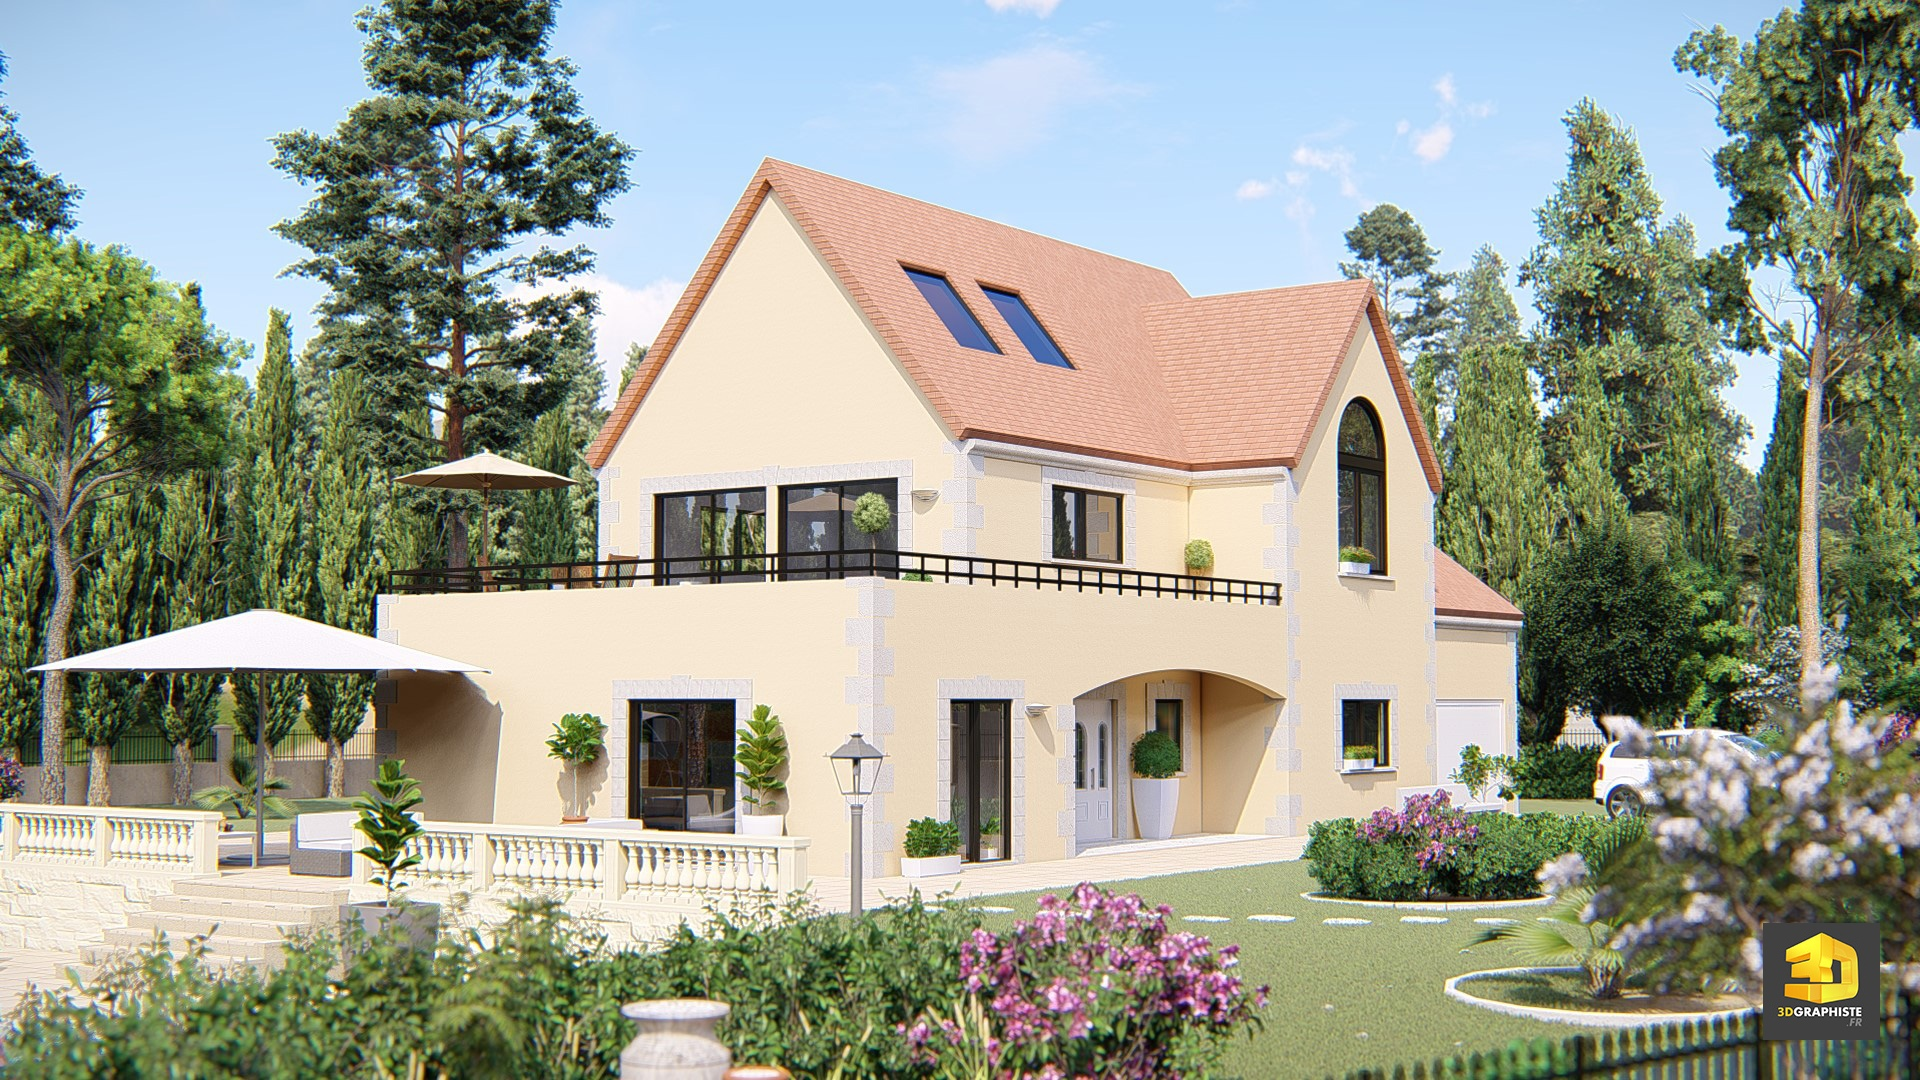 Maison plan 3d finest hd wallpapers plan d maison style for Plan de maison style americain